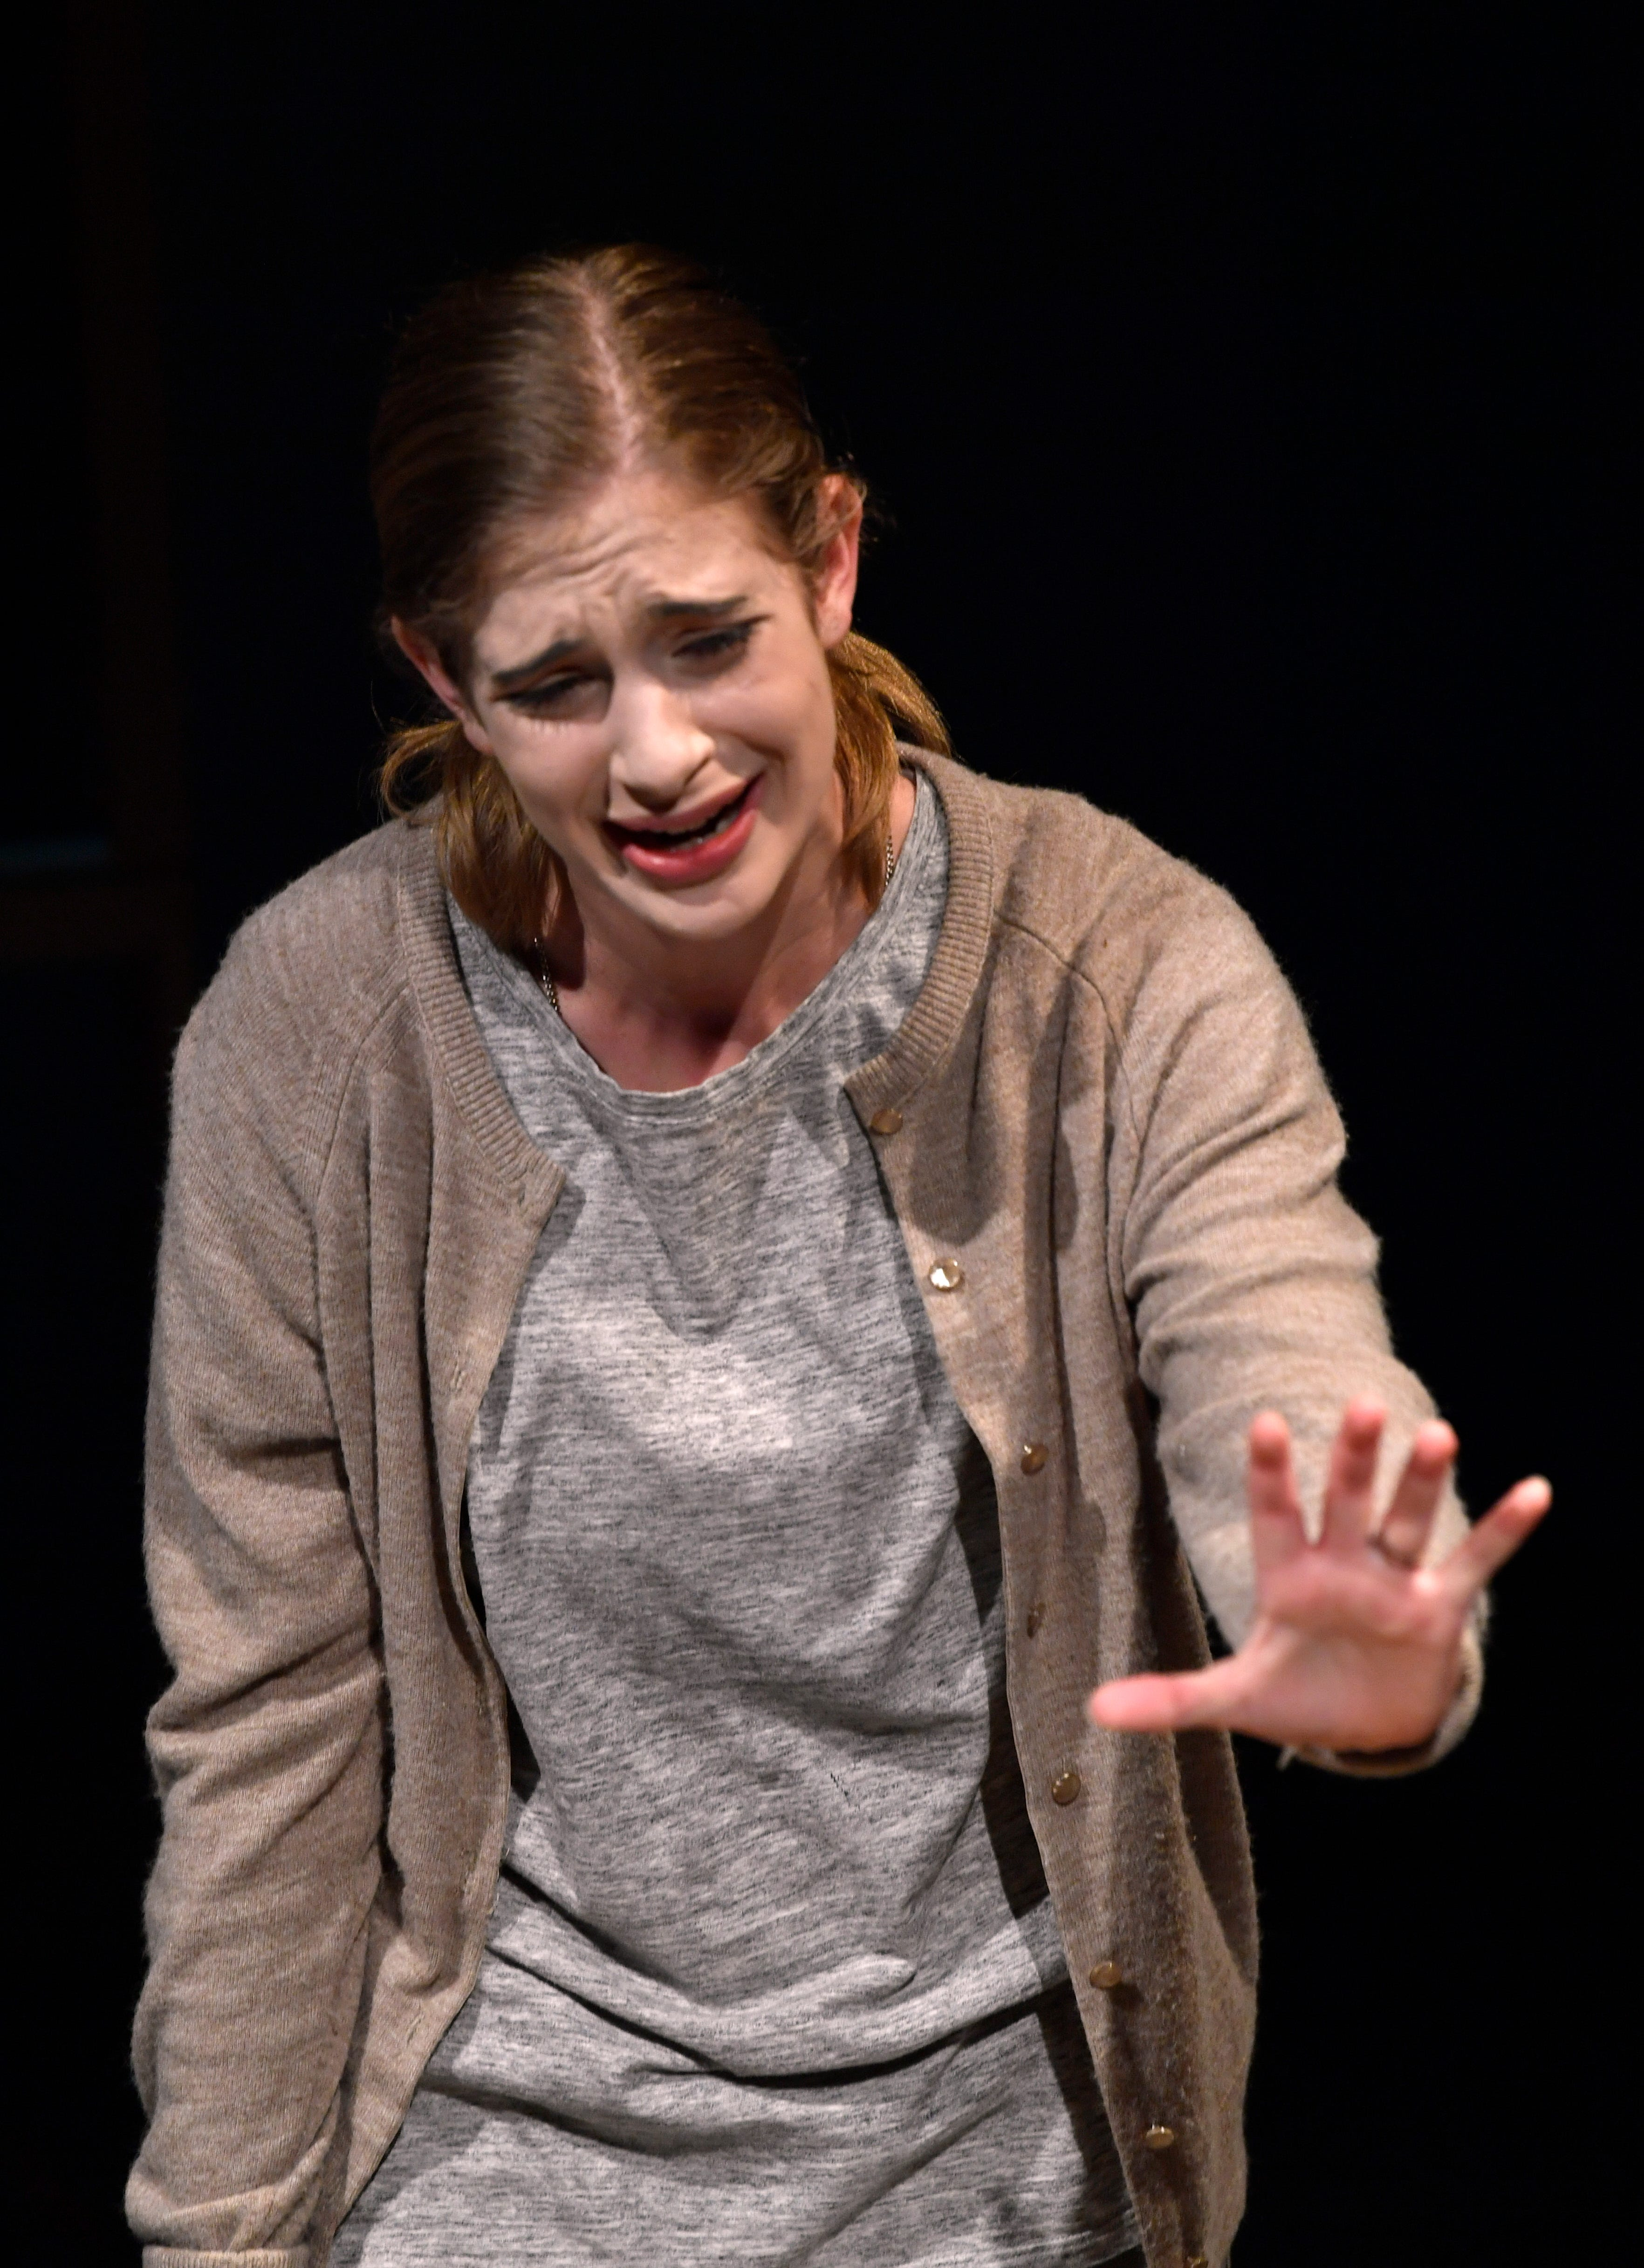 """Carol Stuckey, as played by Bethany Soder, describes her anguish as the widow of a killer during rehearsal of the the drama """"The Amish Project"""" during rehearsal Monday at Van Ellis Theatre."""